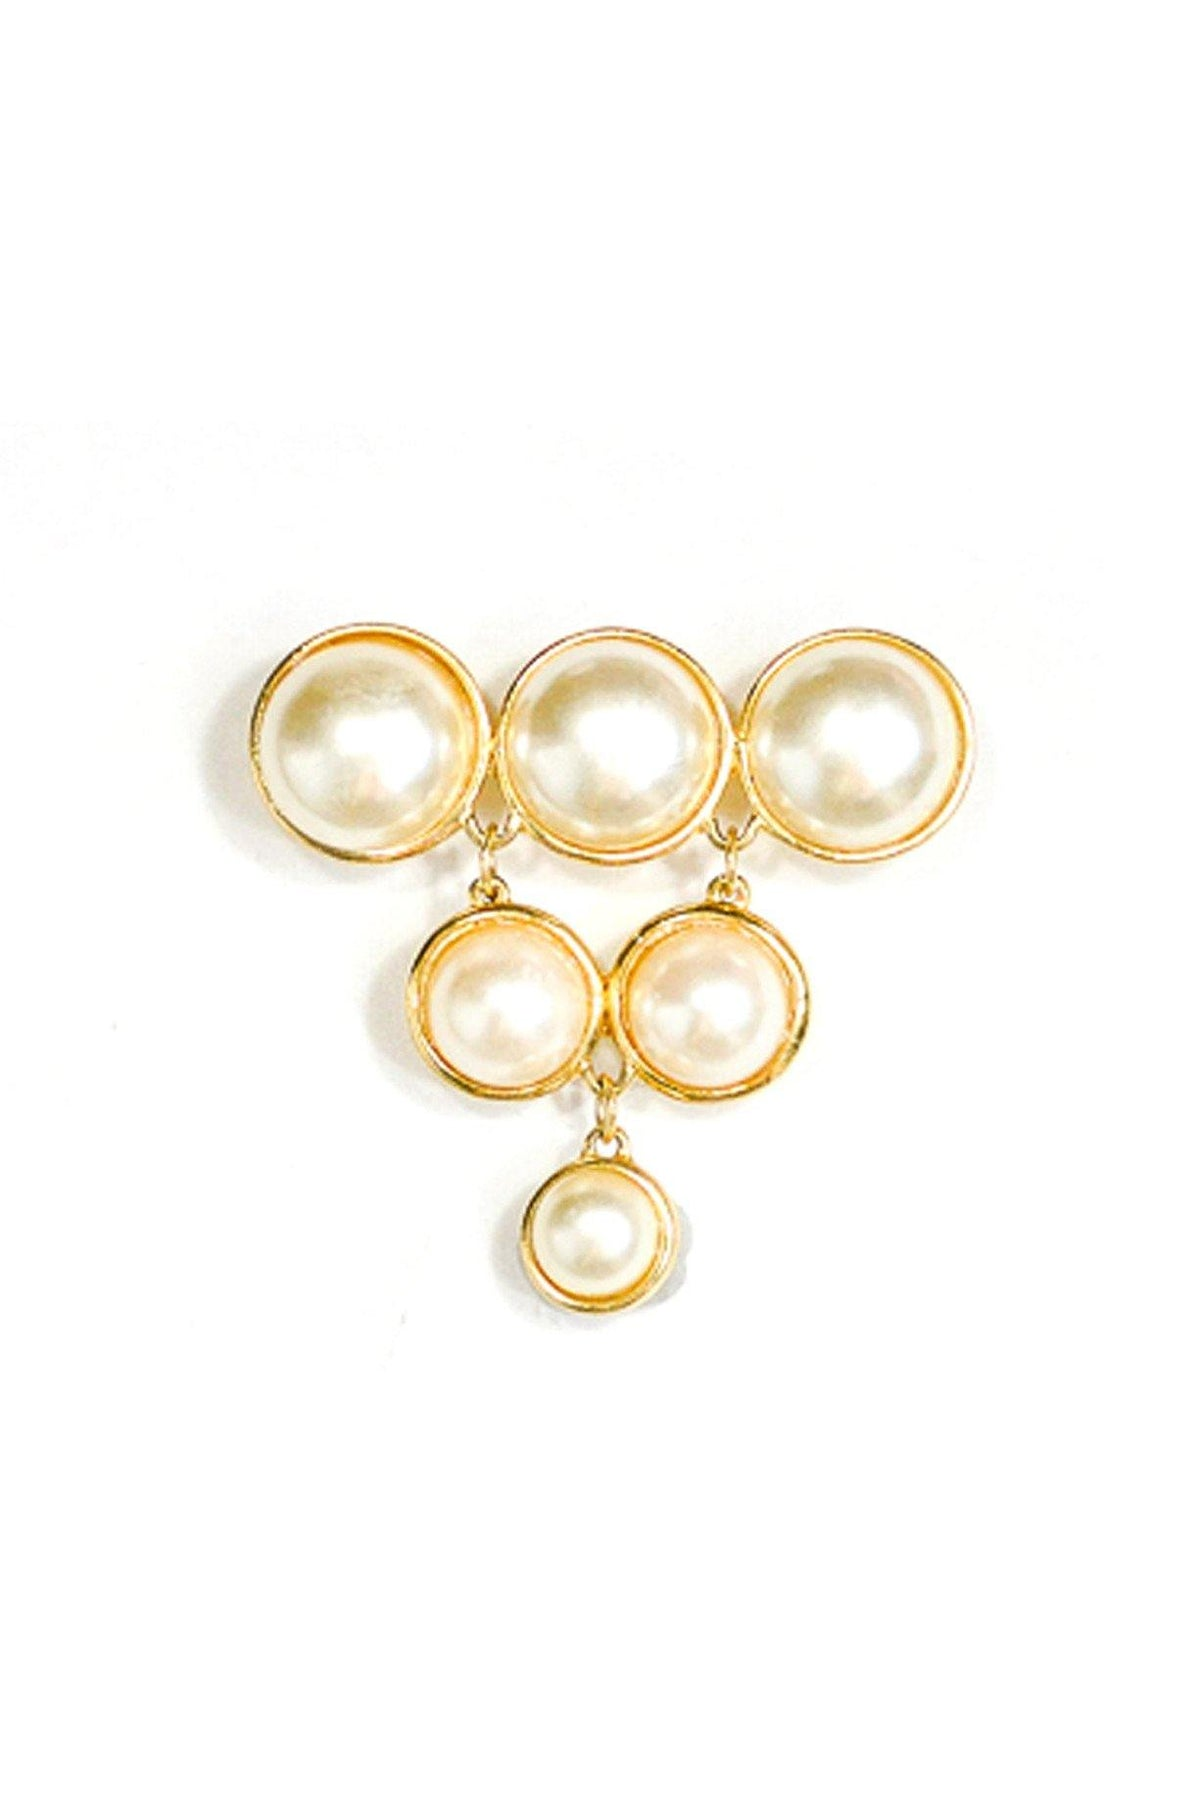 80's Vintage Statement Pearl Drop Brooch